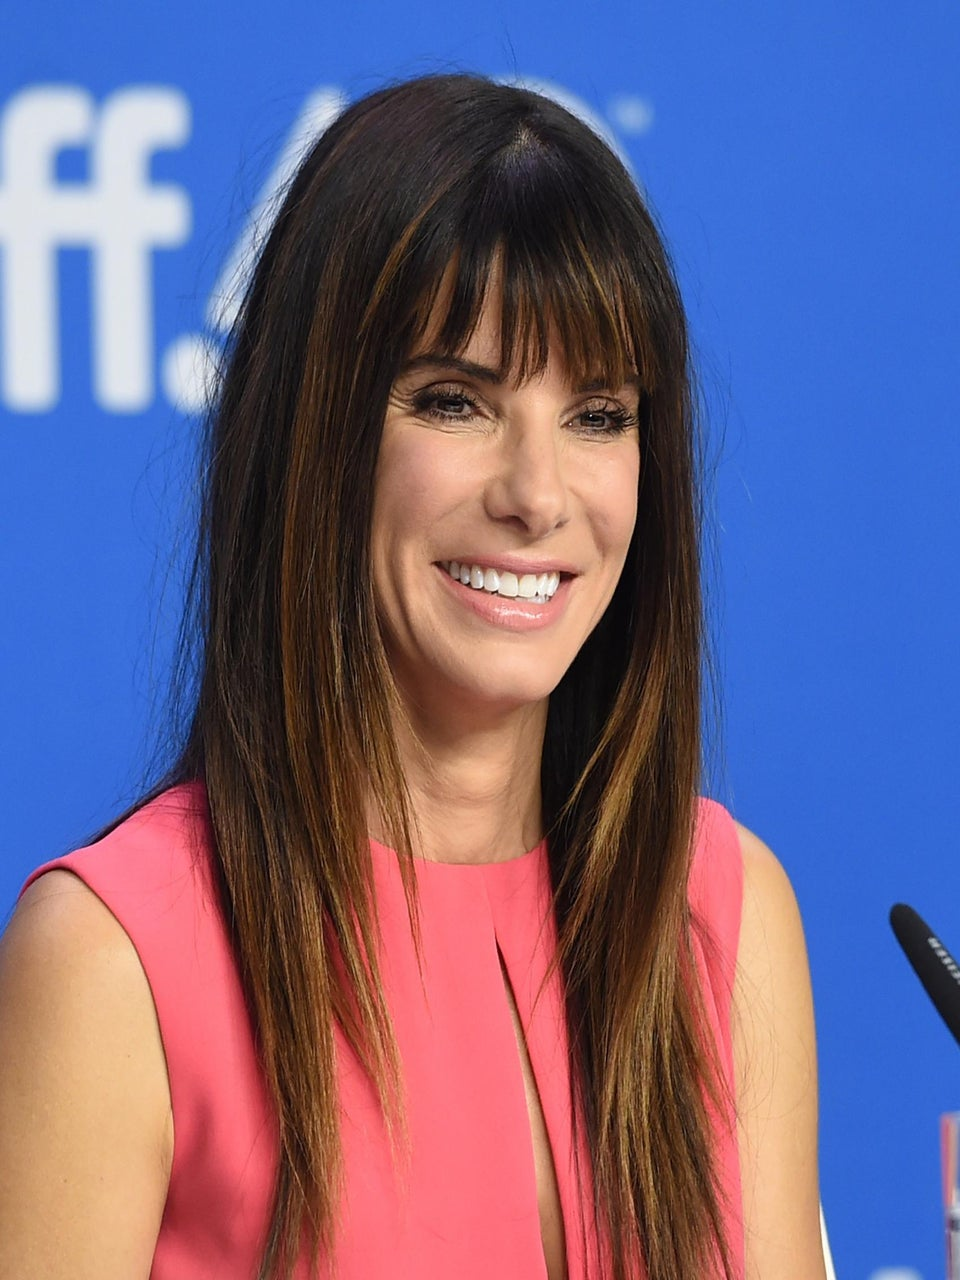 Sandra Bullock Opens Up About Teaching Her Black Son About Racism